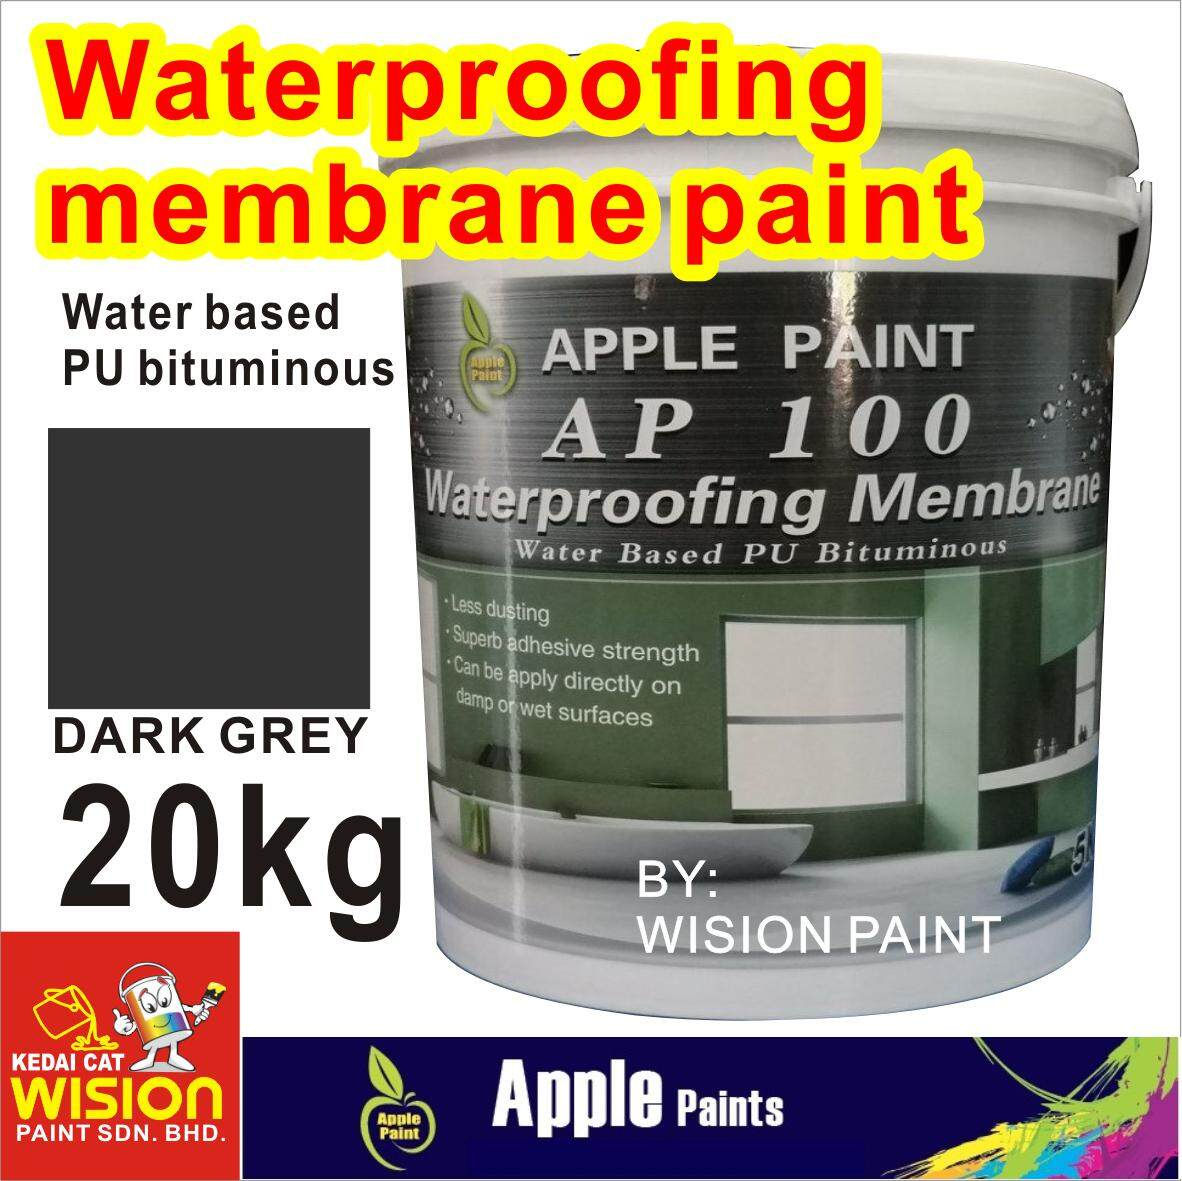 AP 100 WATERPROOFING MEMBRANE ( 20KG ) WATER BASED PU BITUMINOUS LESS DUSTING SUPERB ADHESIVE STRENGTH CAN BE APPLY DIRECTLY ON DAMP OR WET SURFACES APPLE PAINT